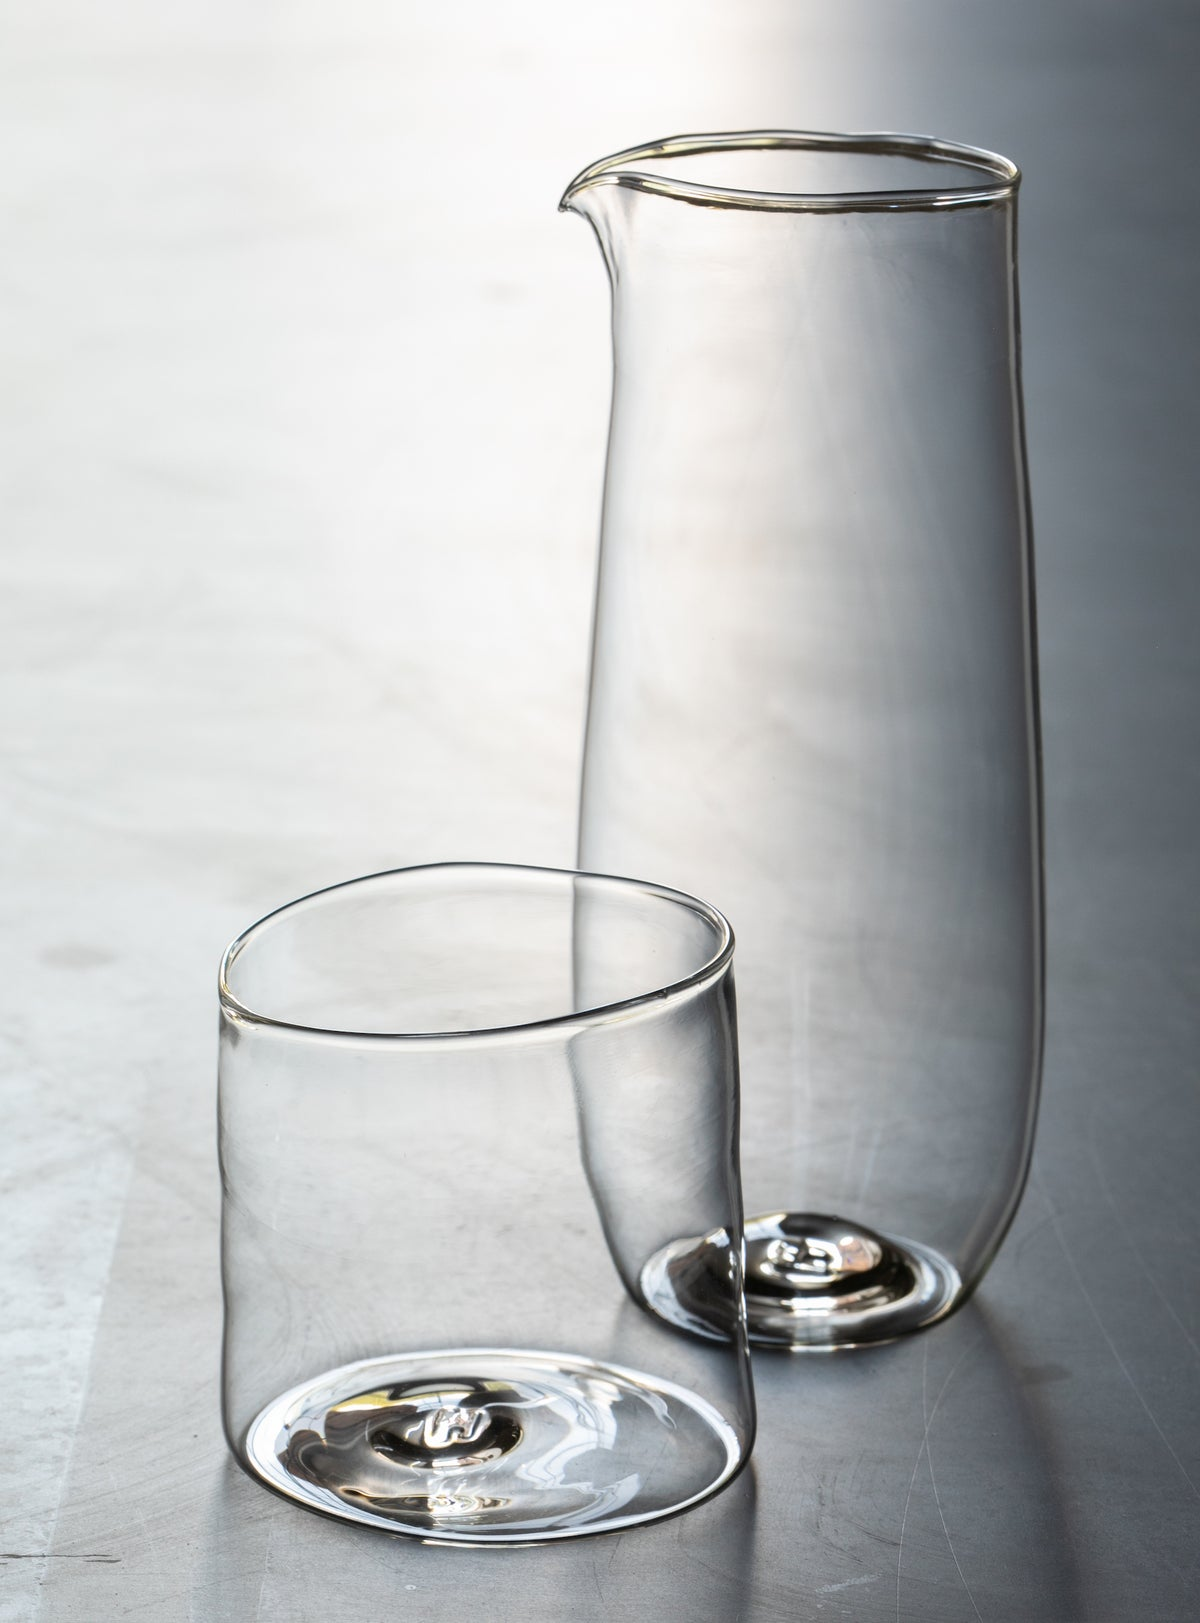 Image of Cup and Carafe